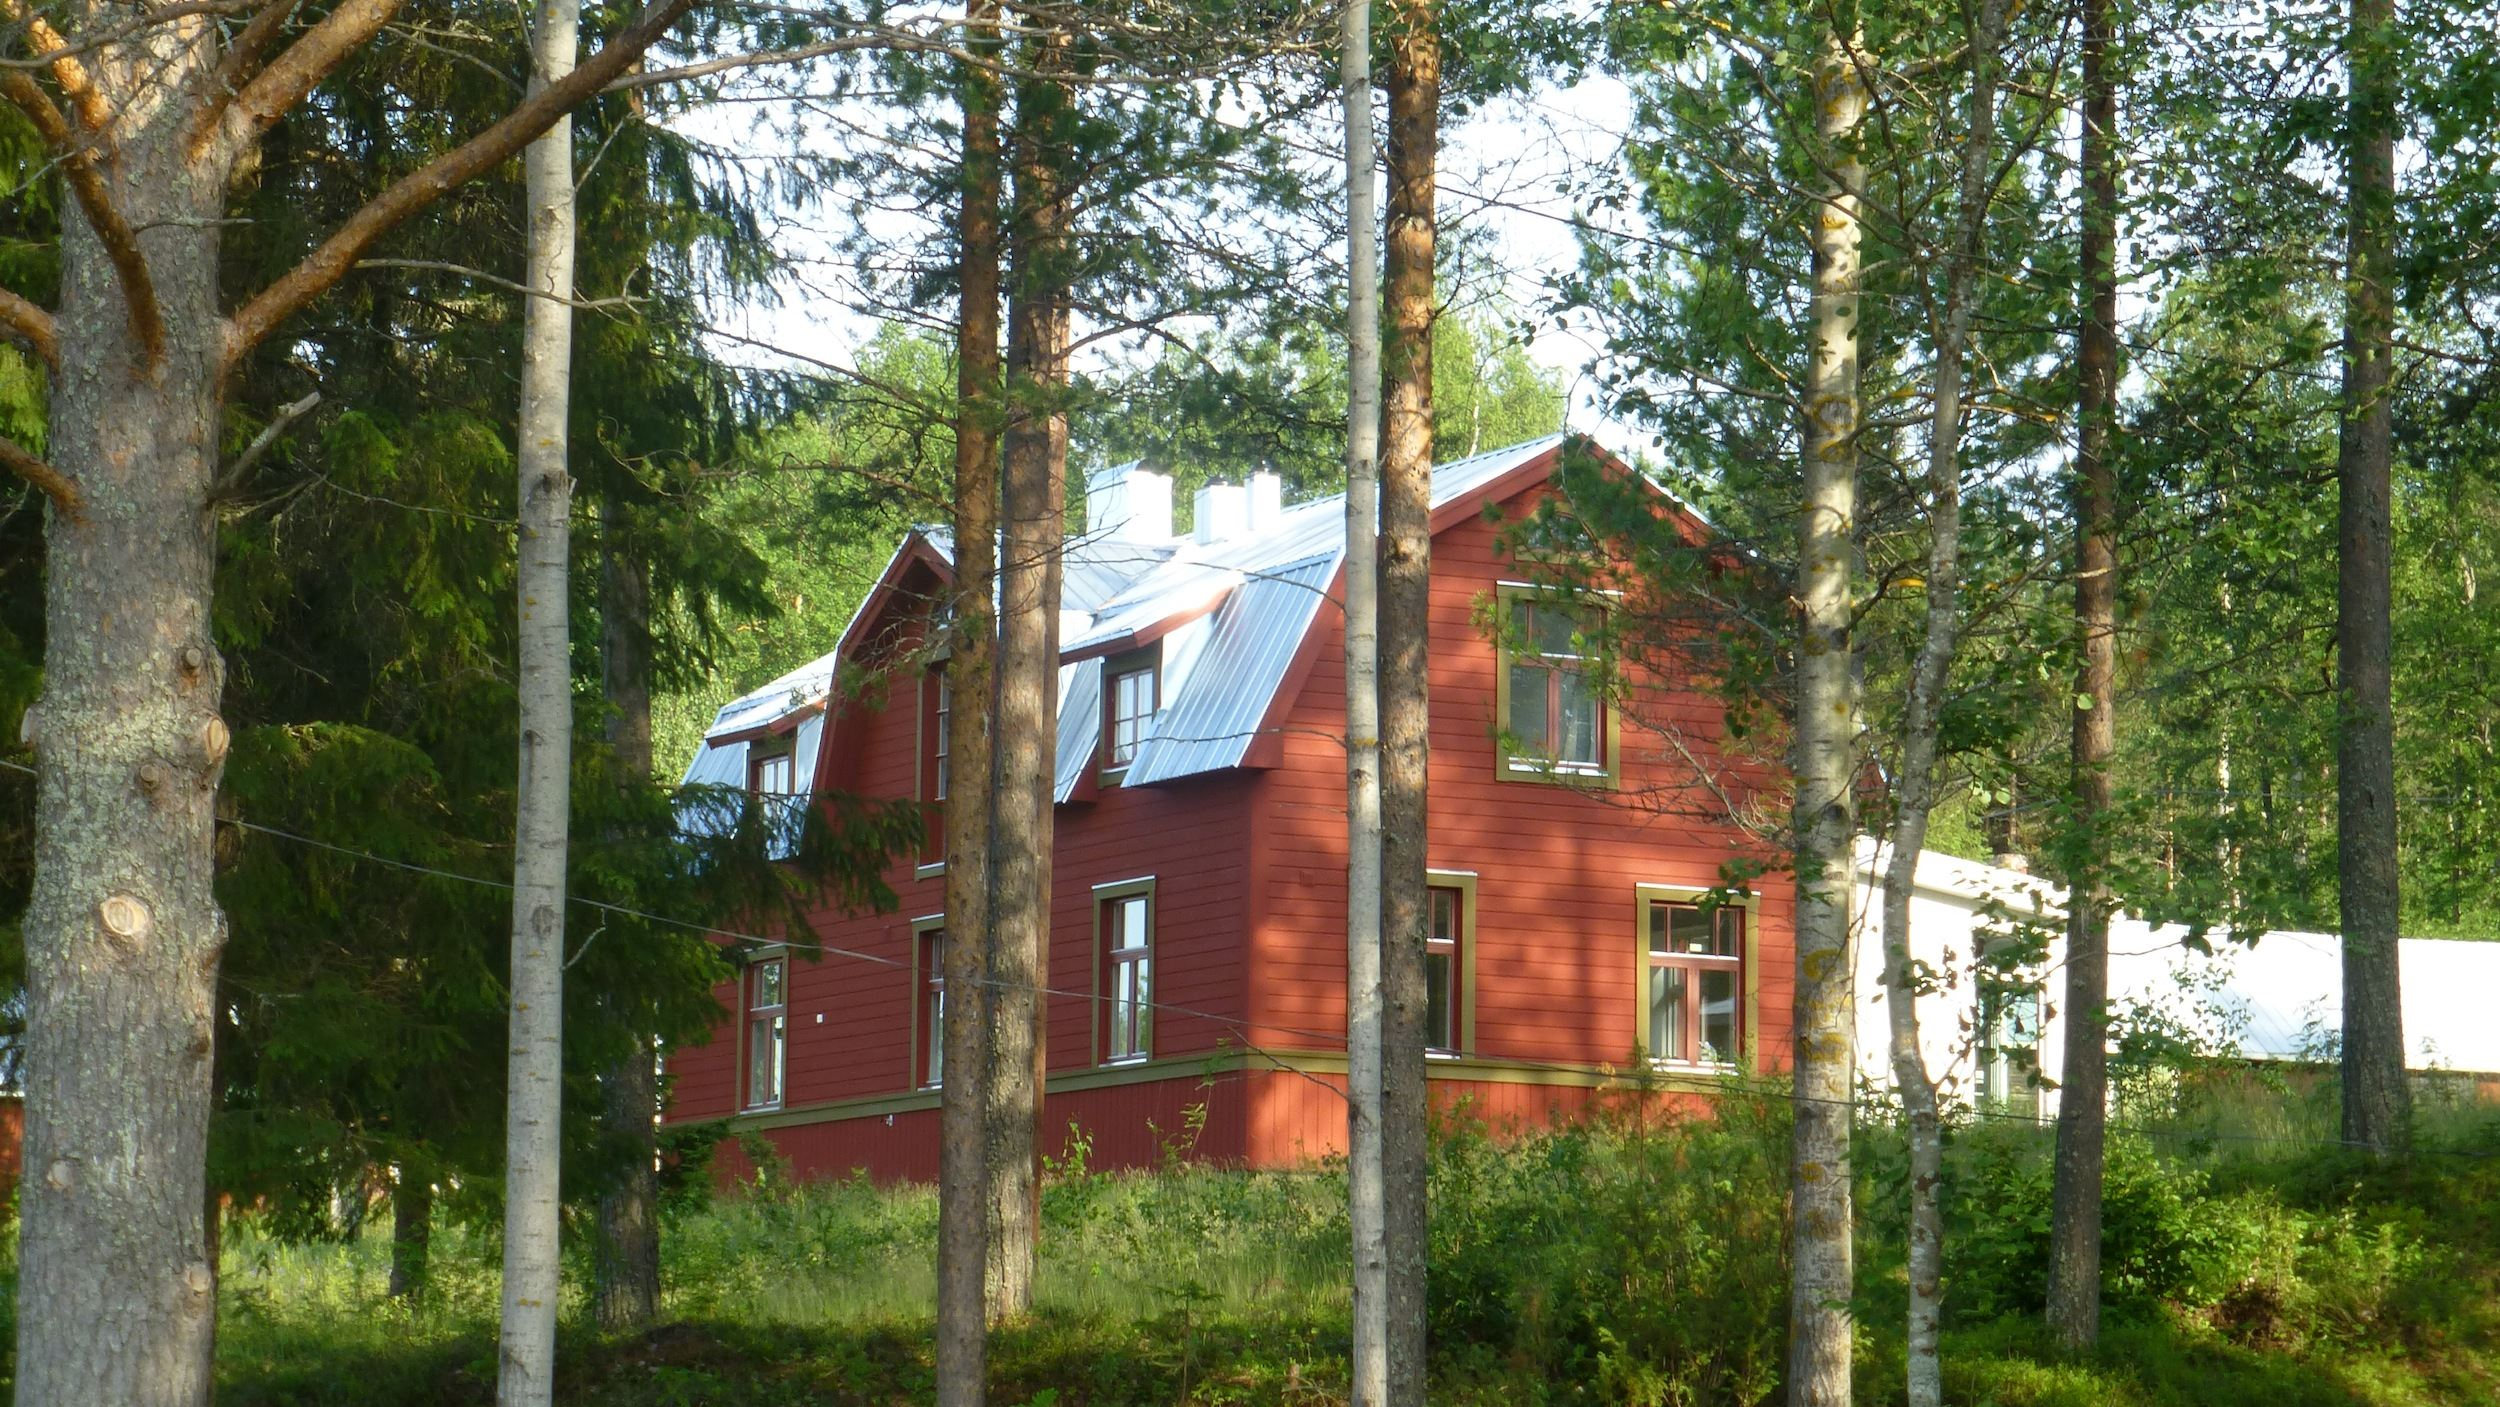 The Wennberg House